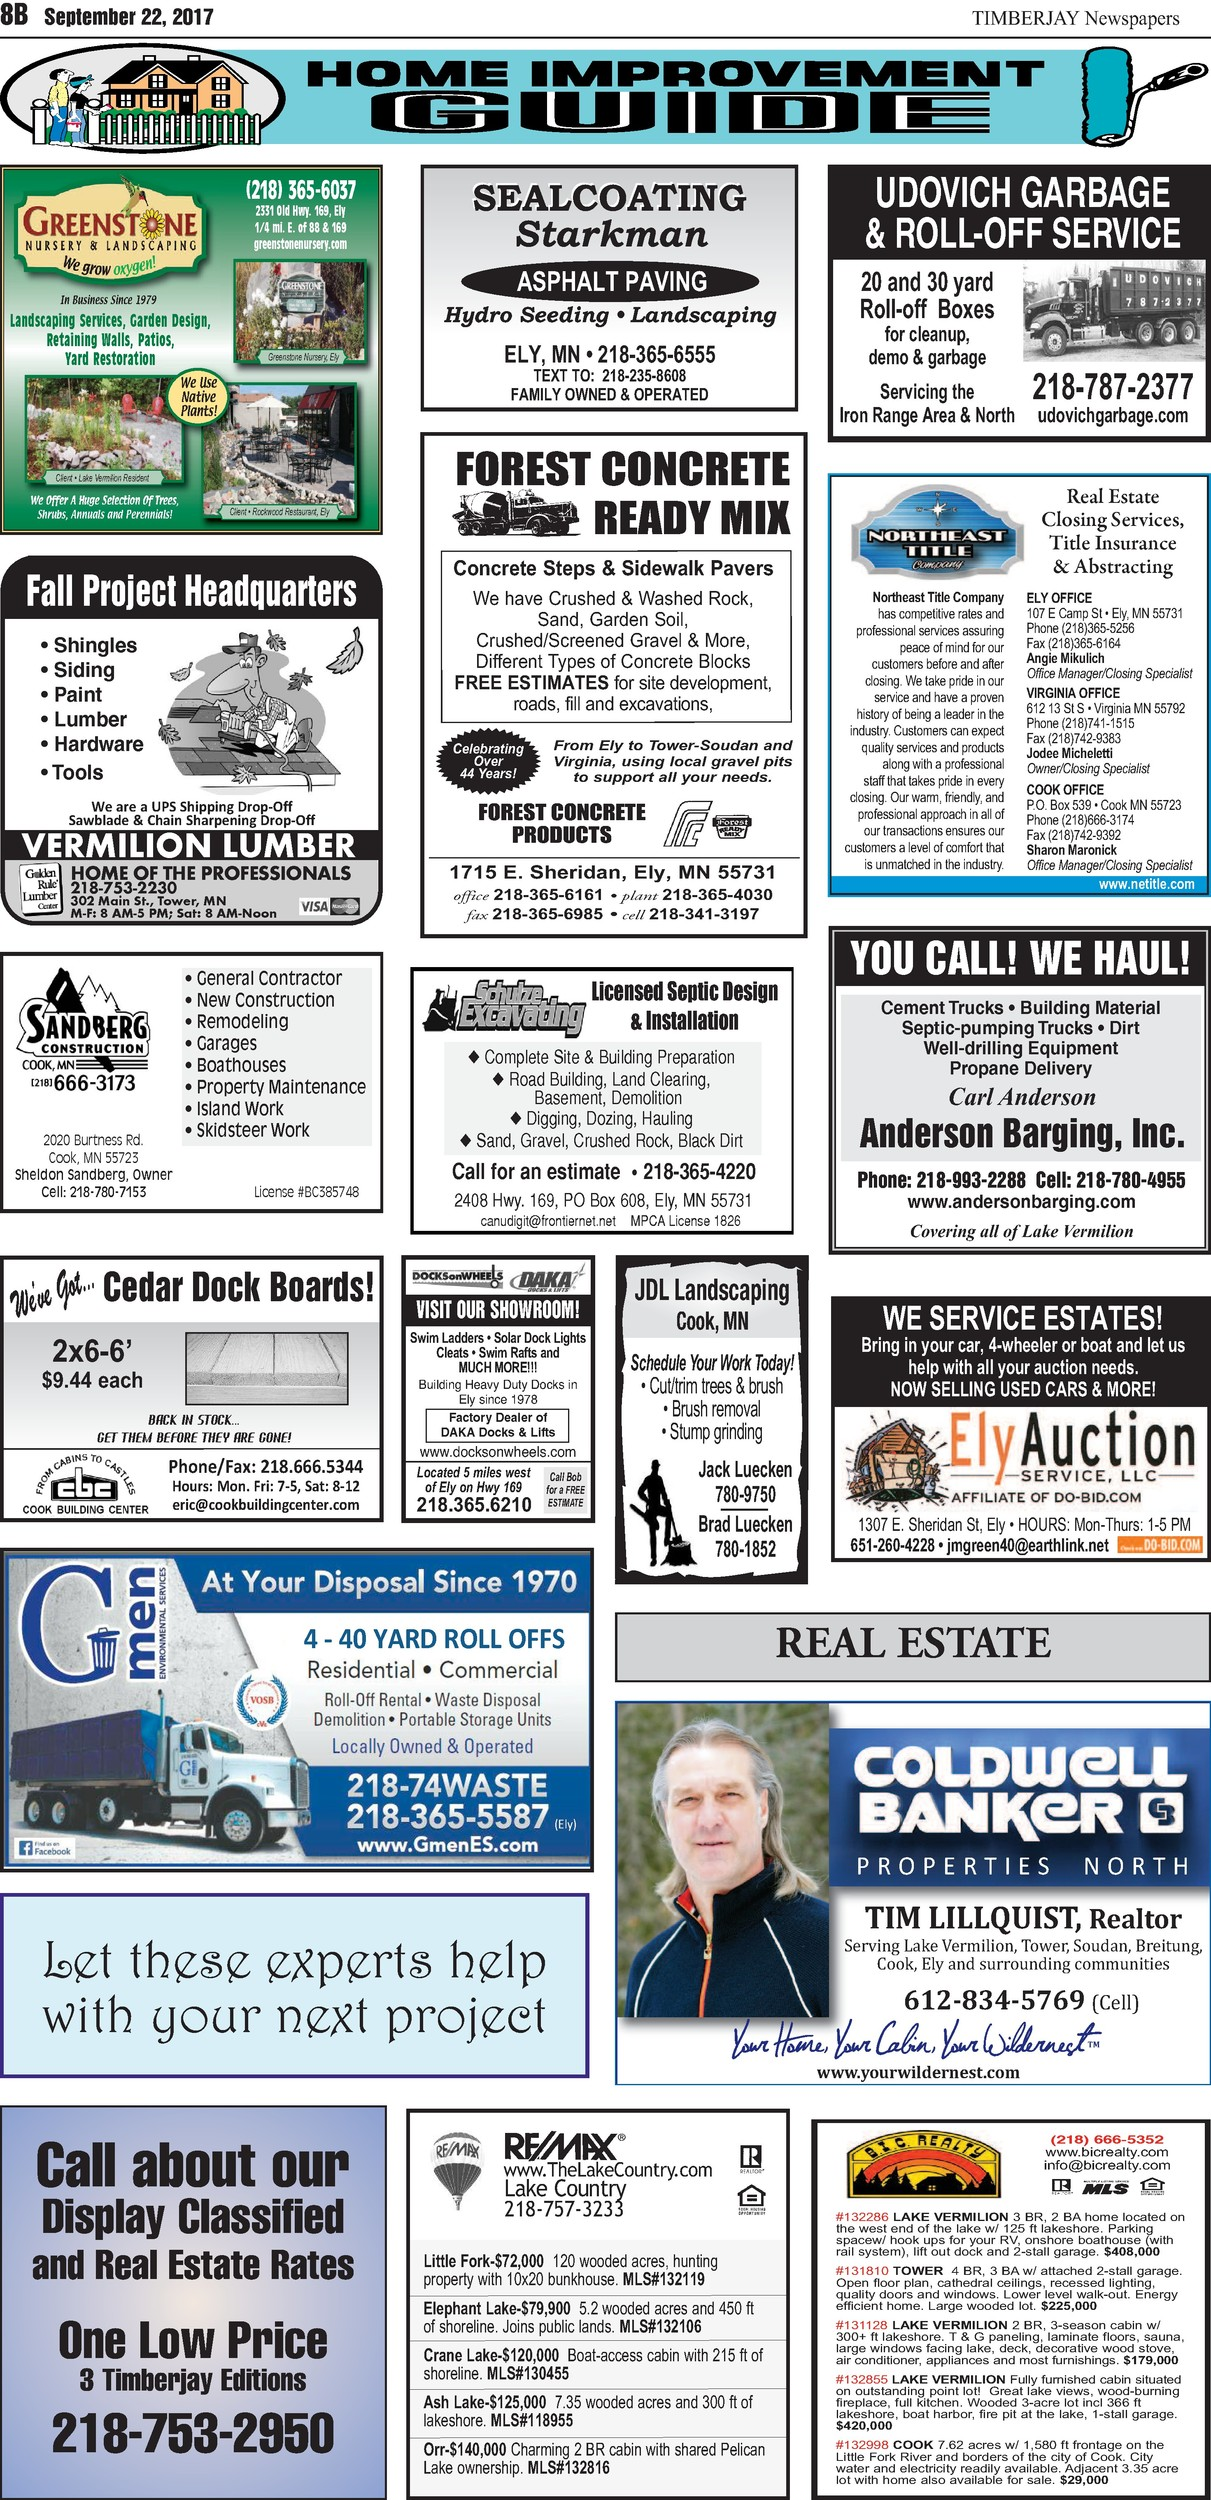 Click here to download the legal notices and classifieds from page 8B